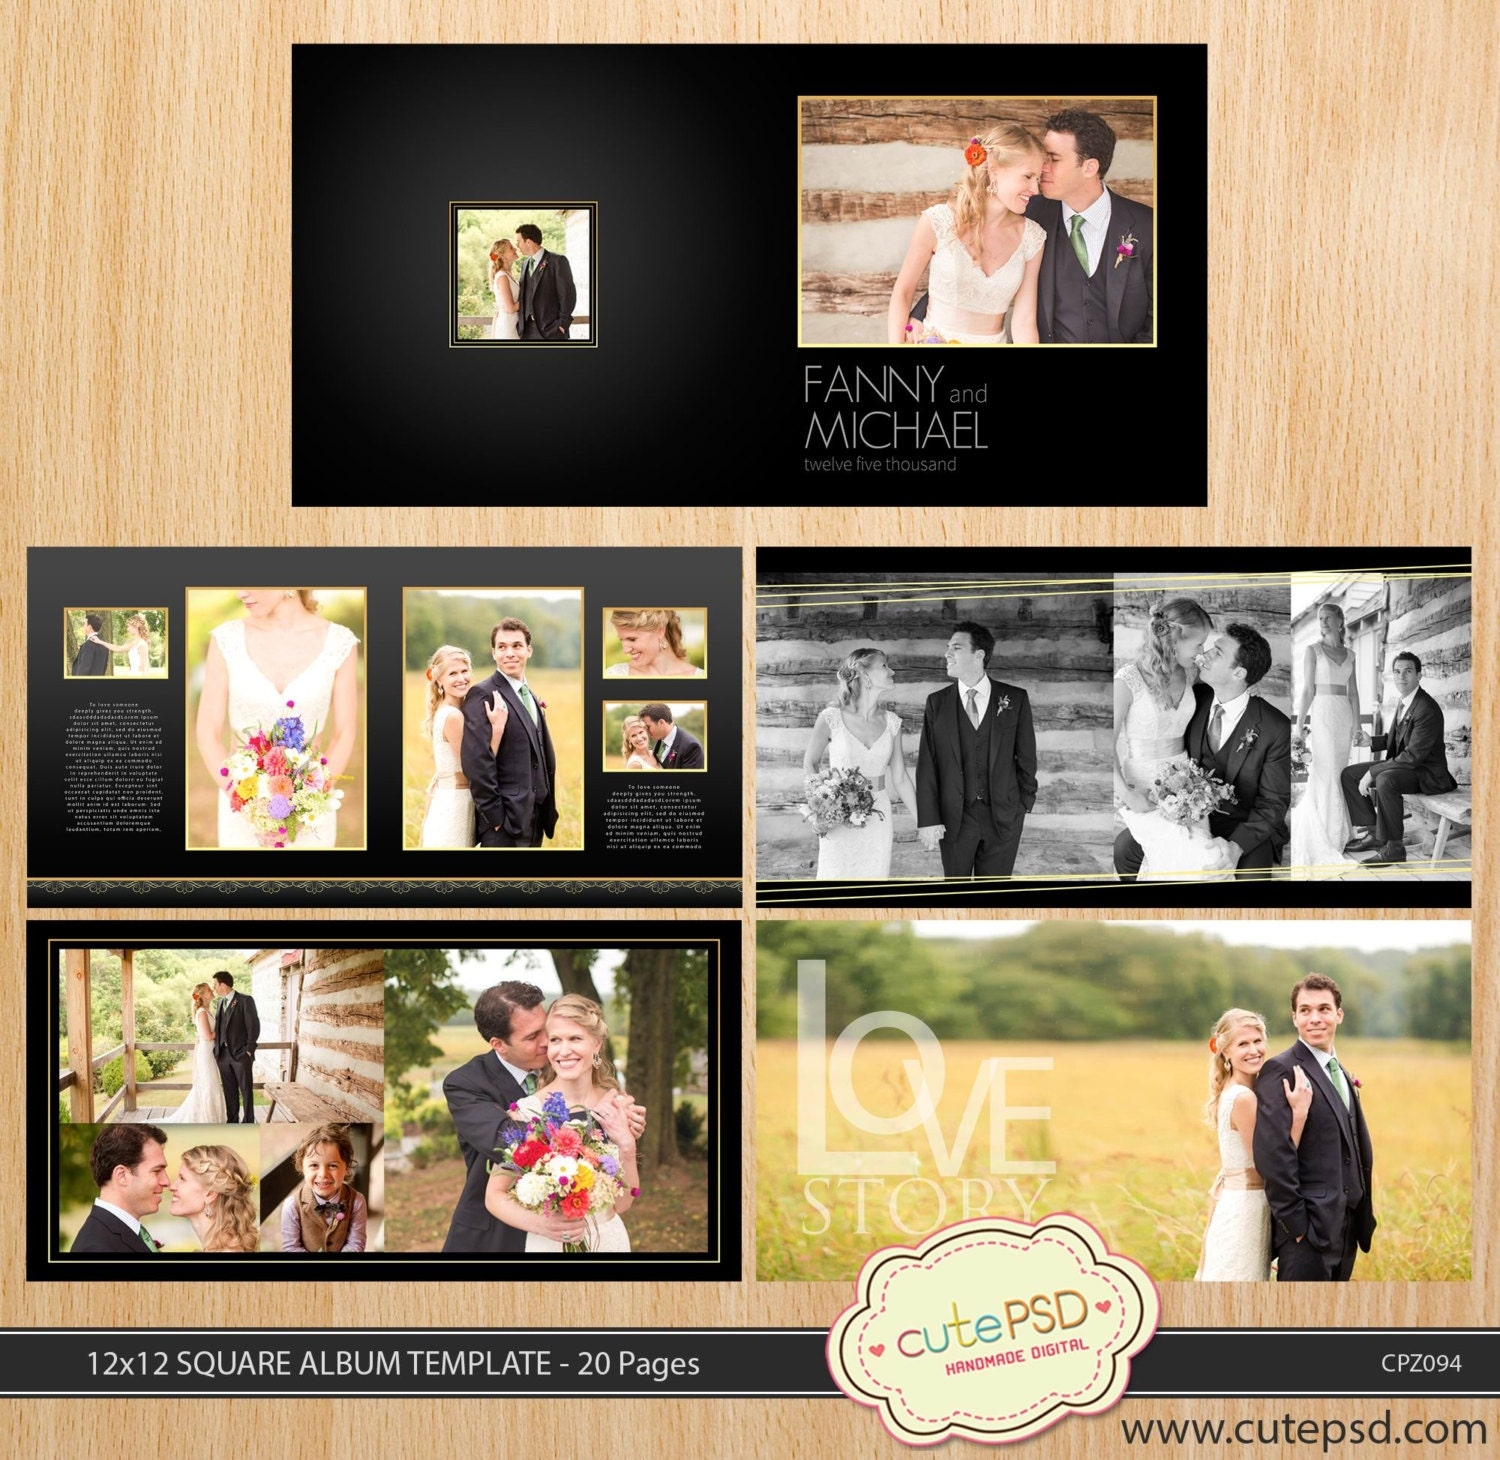 12x12 square wedding album template 20 pages dark gold. Black Bedroom Furniture Sets. Home Design Ideas